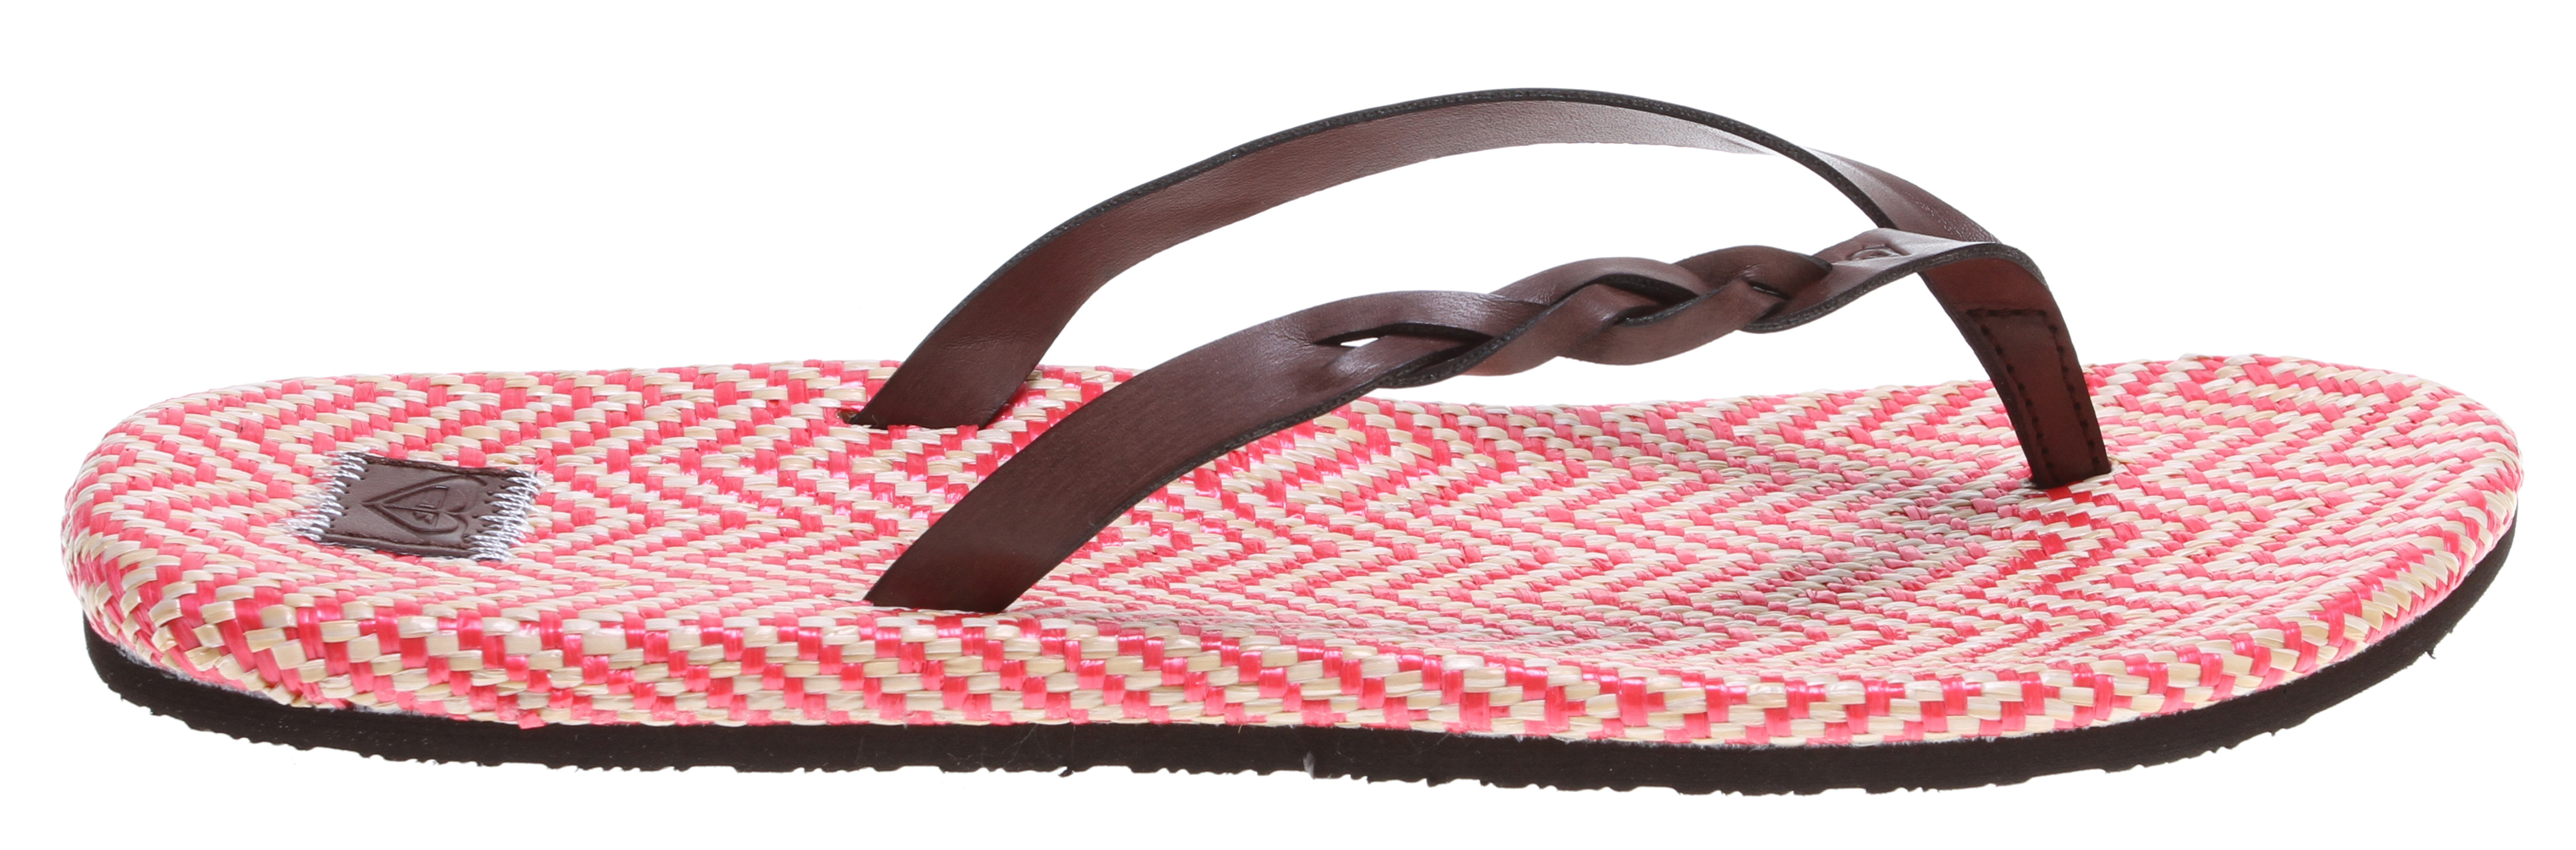 Surf Get set for your tropical vacay with our Kalani Sandals! Our cute sandals feature a braided strap and a cheerful zig-zag print tatami wrapped sock. We think it's a classic, cool staple that definitely needs to go in your getaway bag! Burnished side braid synthetic straps with embossed Roxy heart logo. Embossed PU label with contrast stitch. EVA outsole. Imported. - $29.00